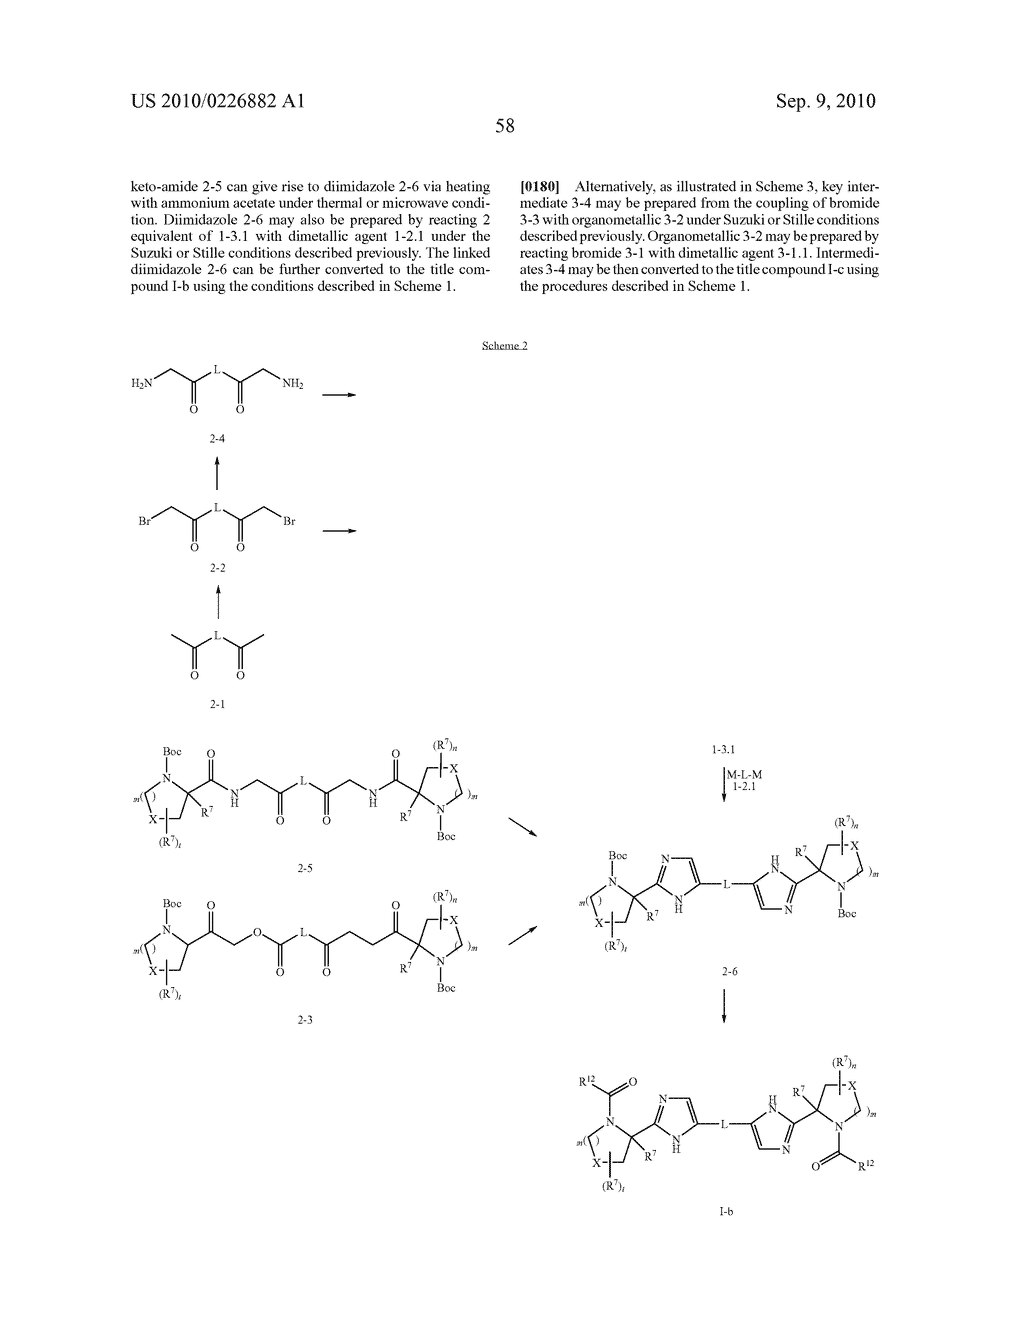 LINKED DIIMIDAZOLE ANTIVIRALS - diagram, schematic, and image 59